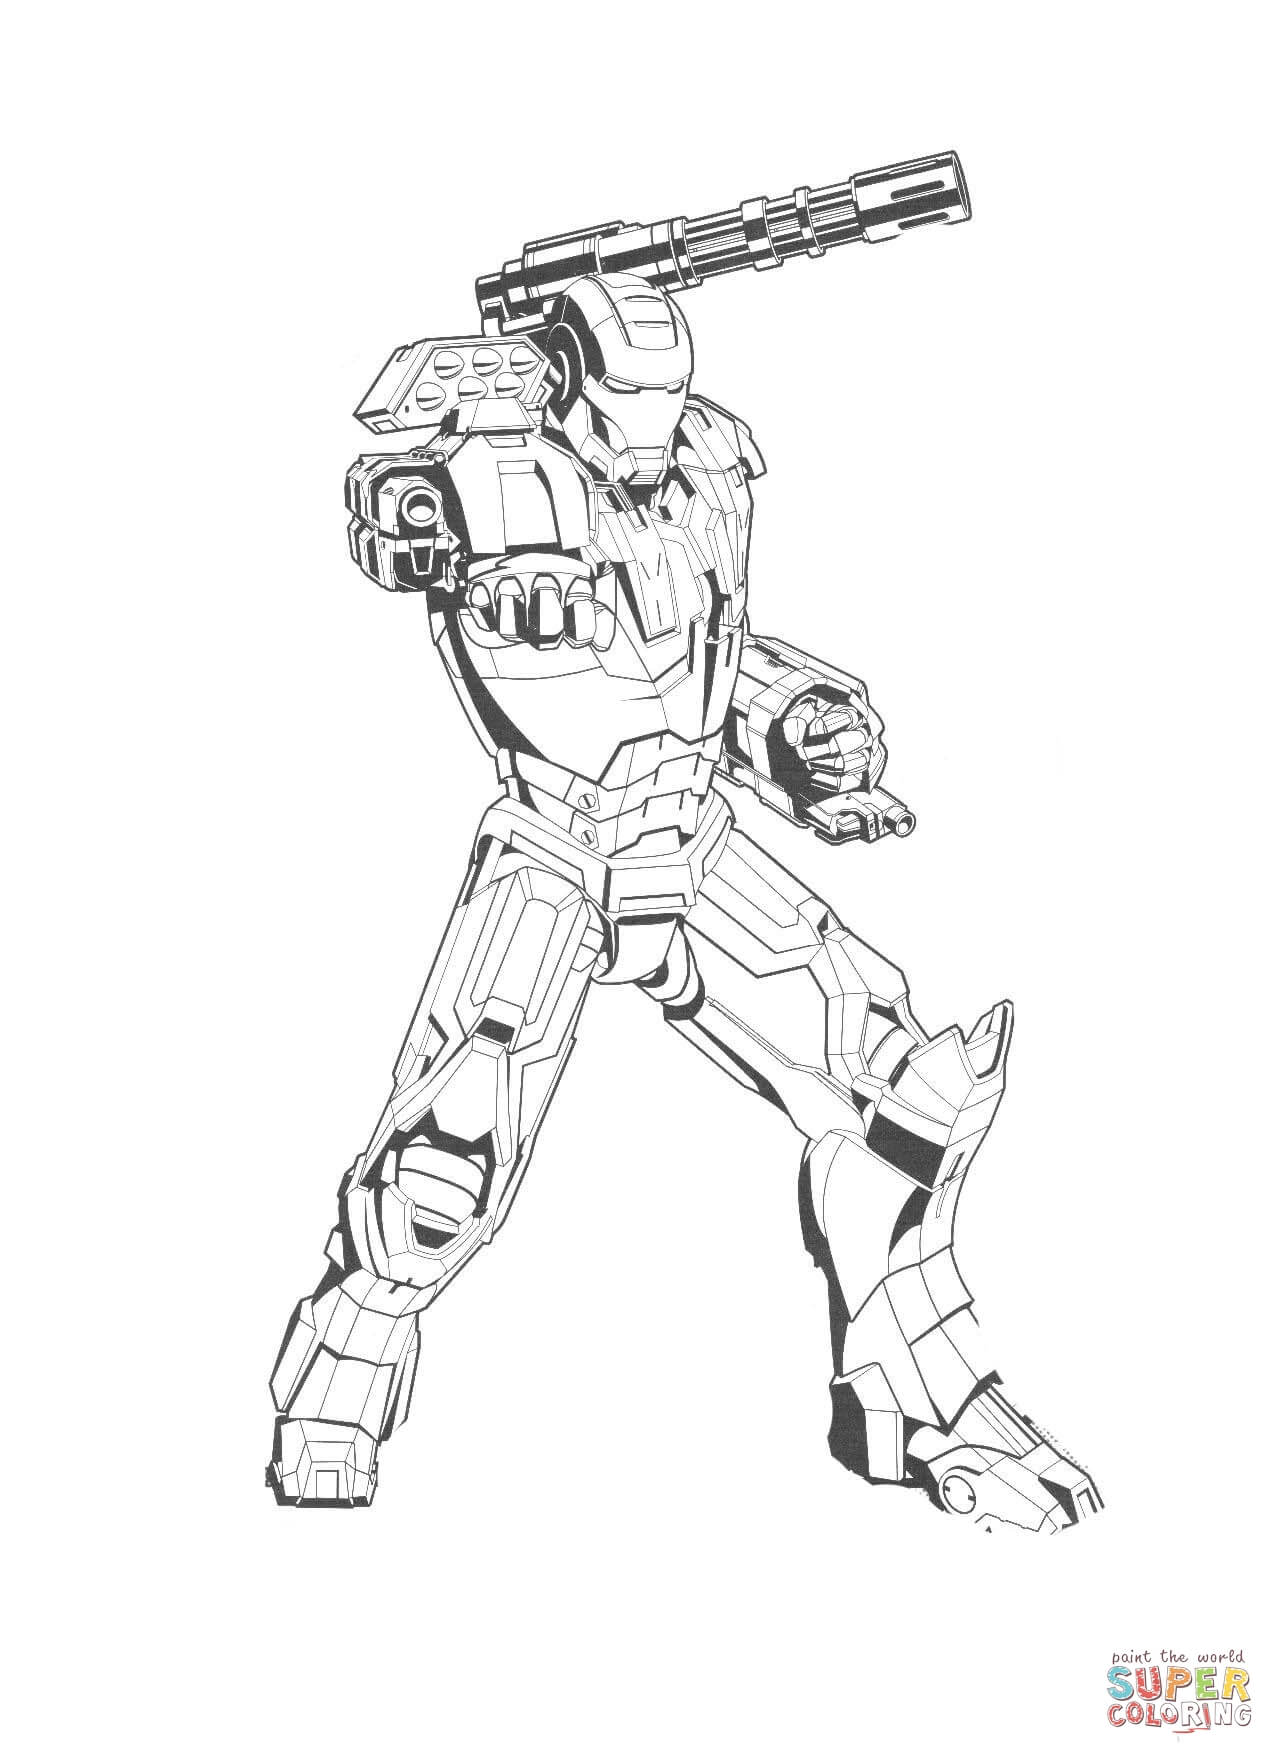 Iron Man Coloring Pages | Free Coloring Pages - Coloring Home